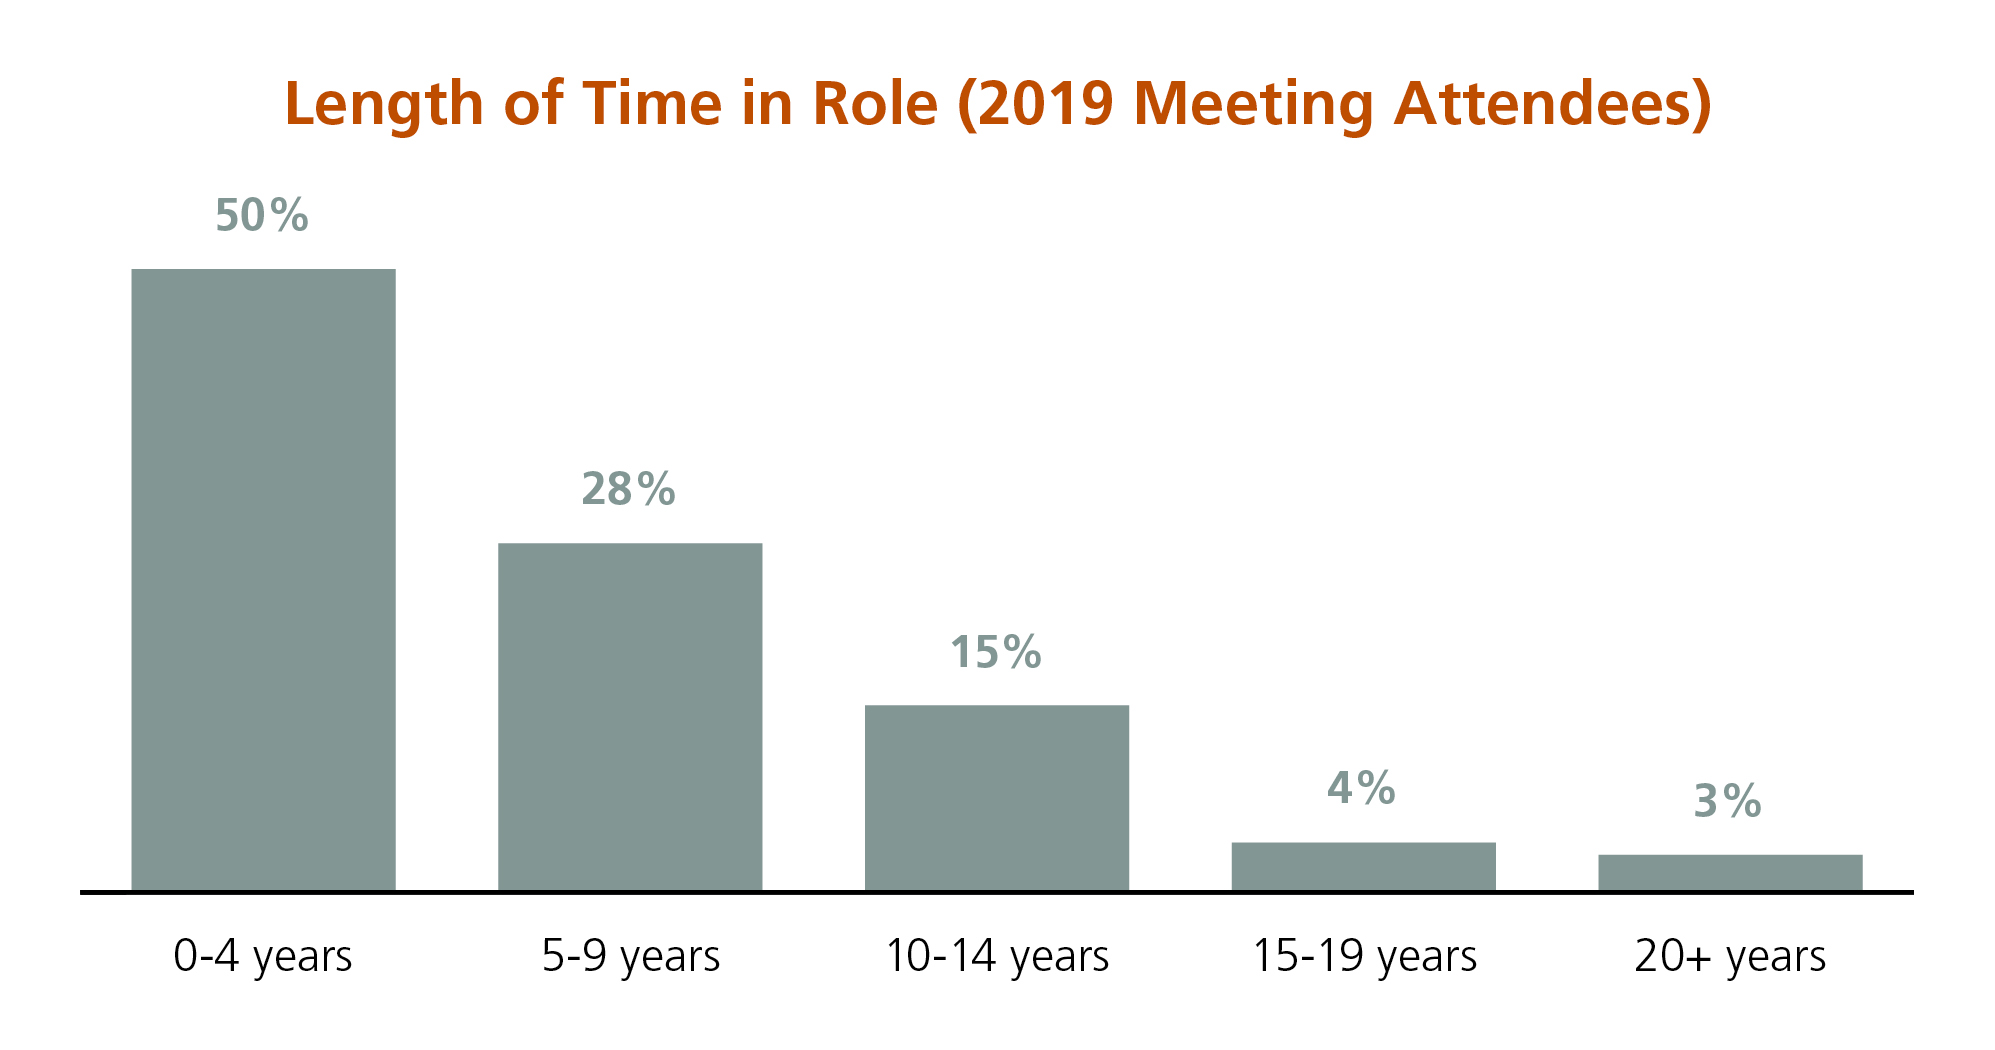 aamc-2020-gir-conference-attendees-length-time-role